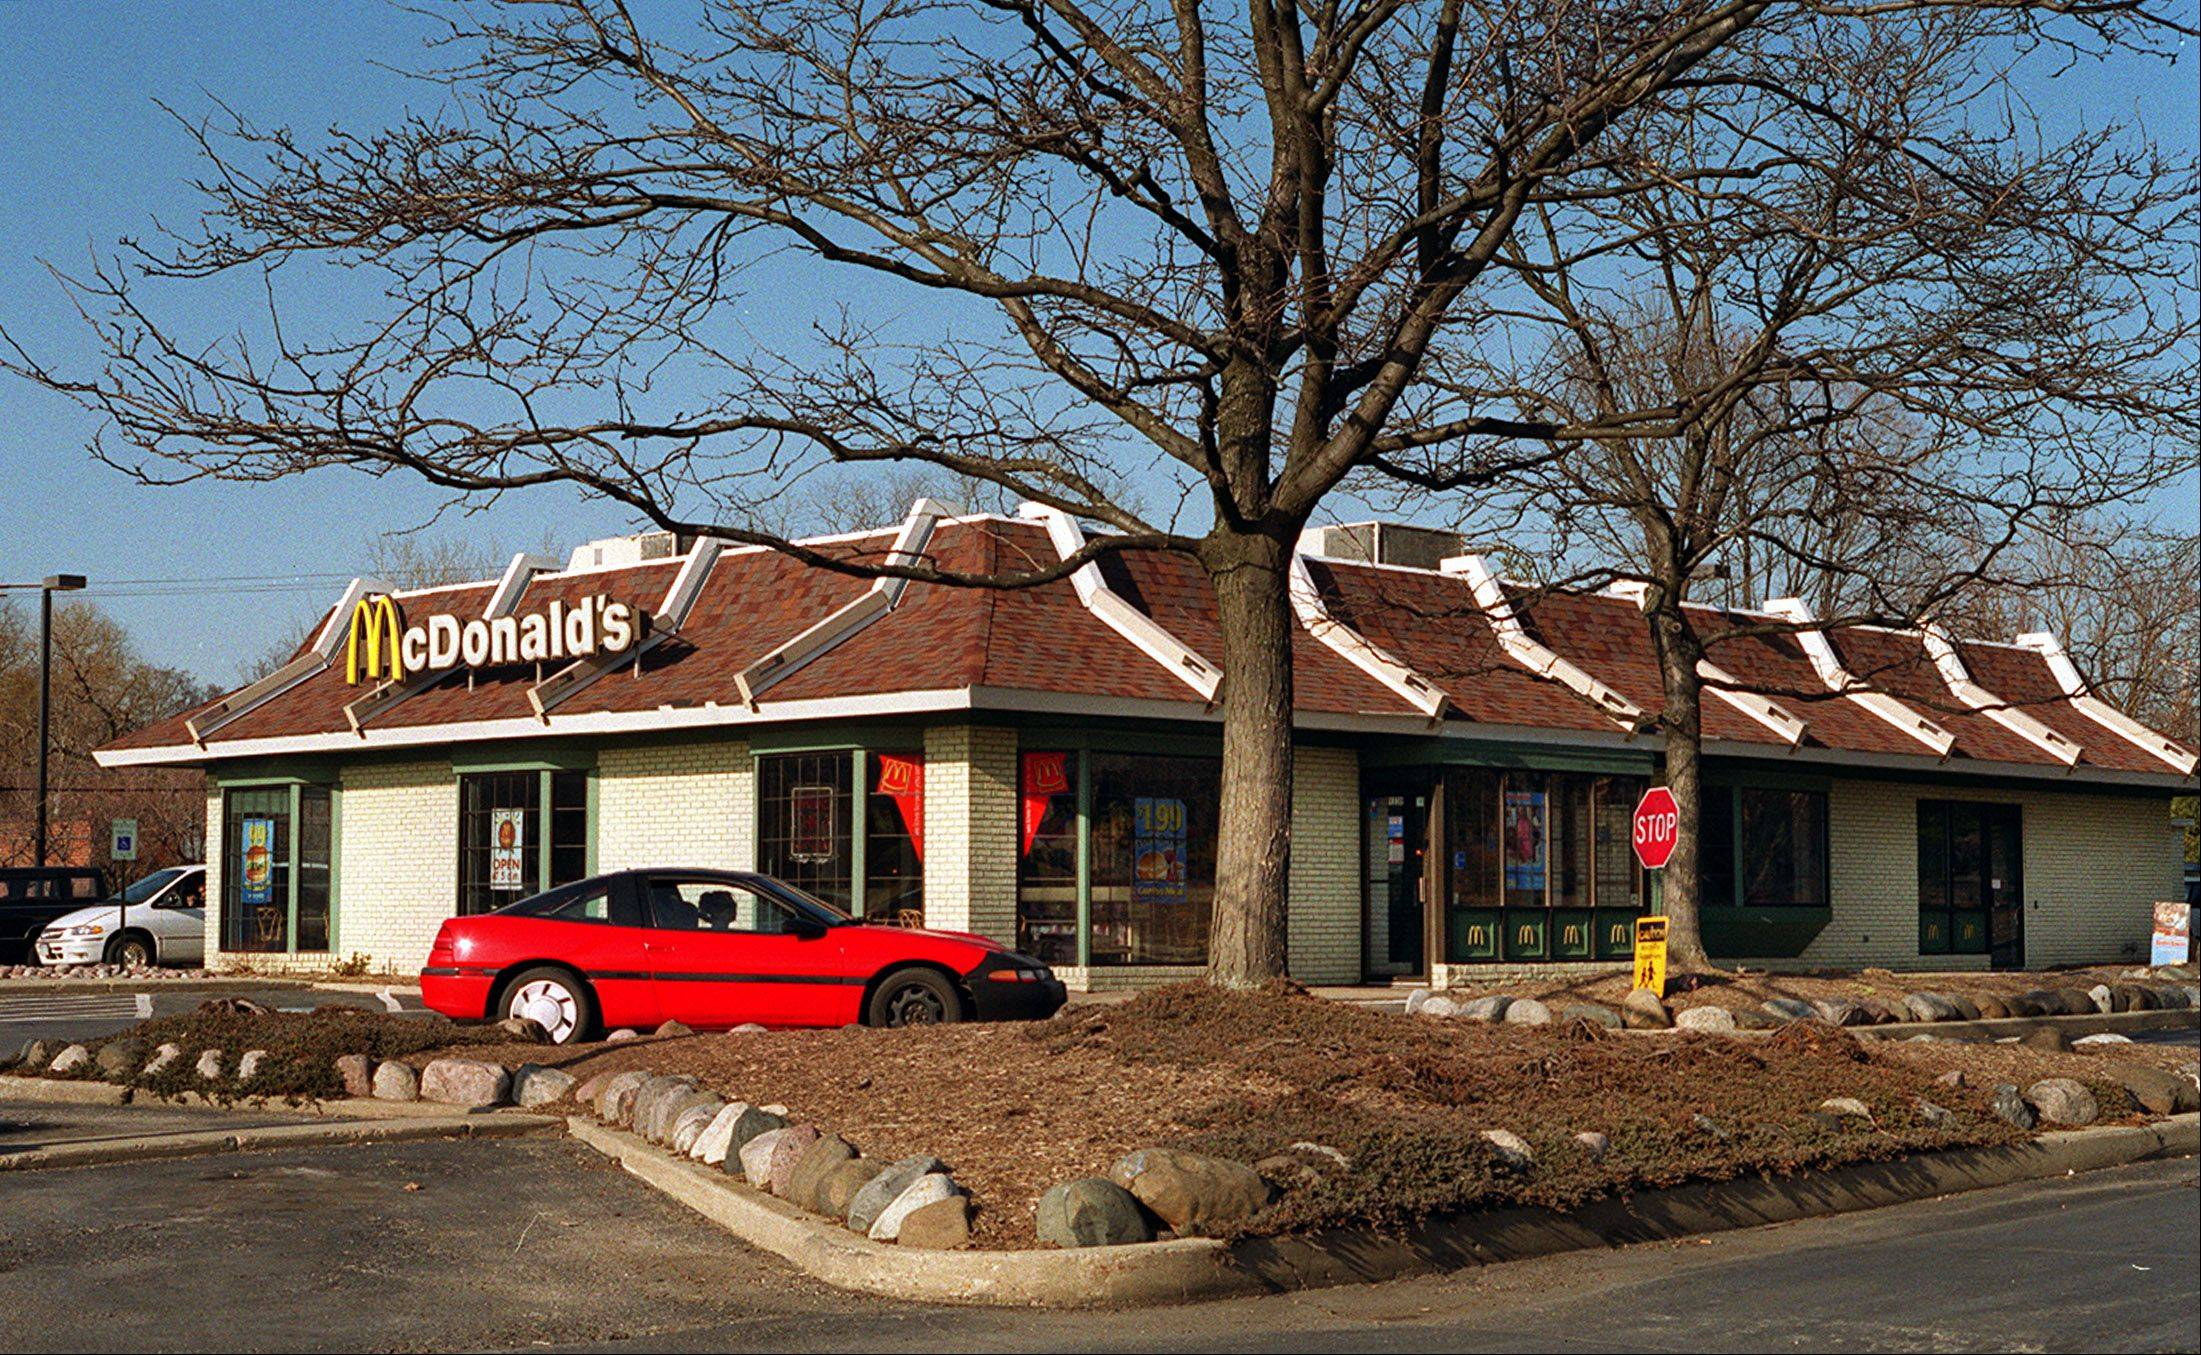 Oak Brook-based McDonald's says a key sales figure edged up modestly in July, as a bigger push behind its Dollar Menu and Big Mac in the U.S. helped offset declines in other parts of the world.